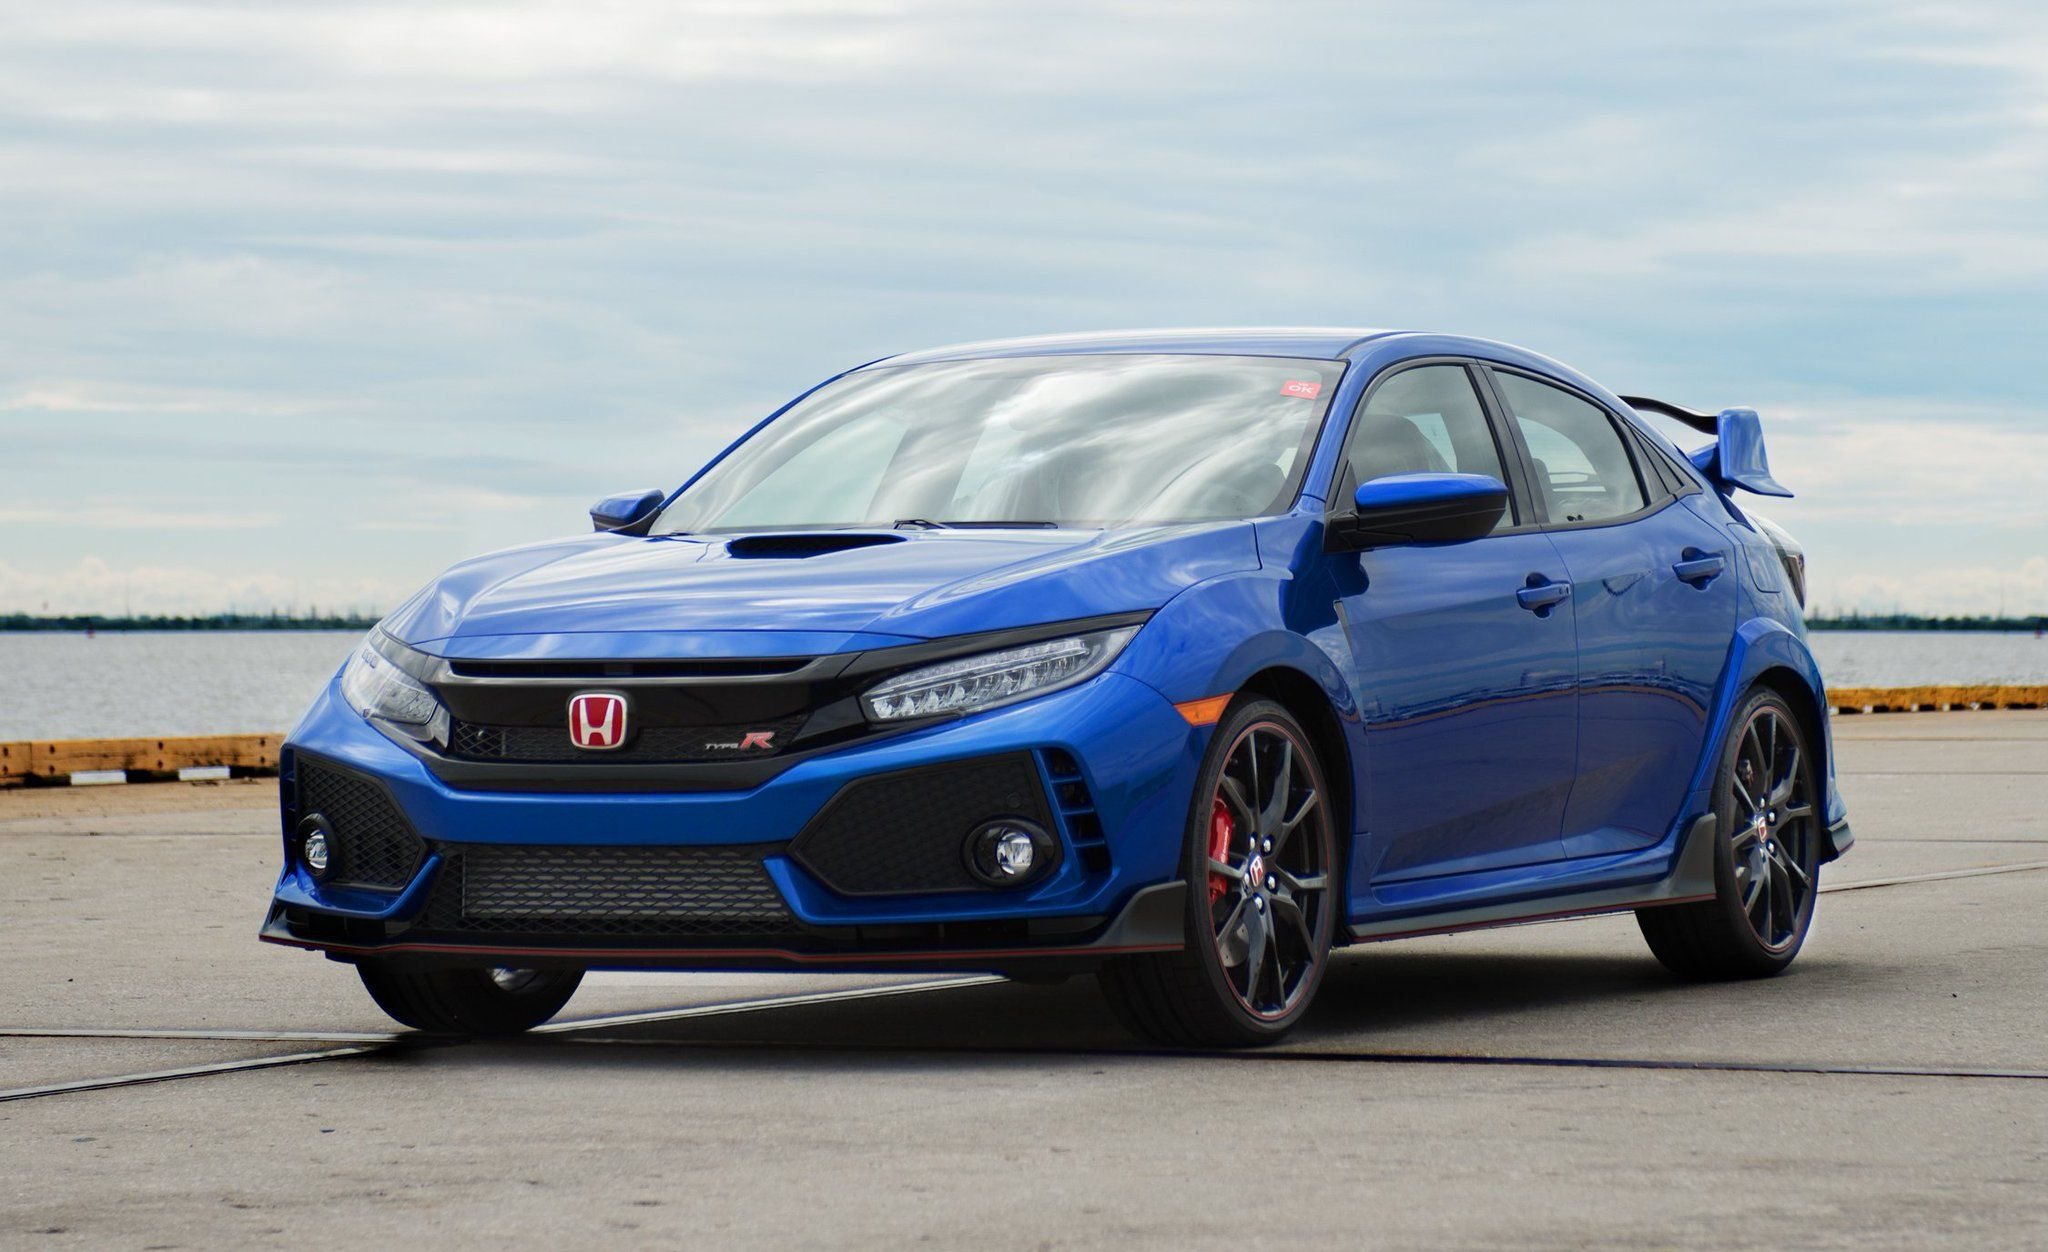 Car And Driver On Twitter Honda Civic Type R Honda Civic Honda Civic Vtec